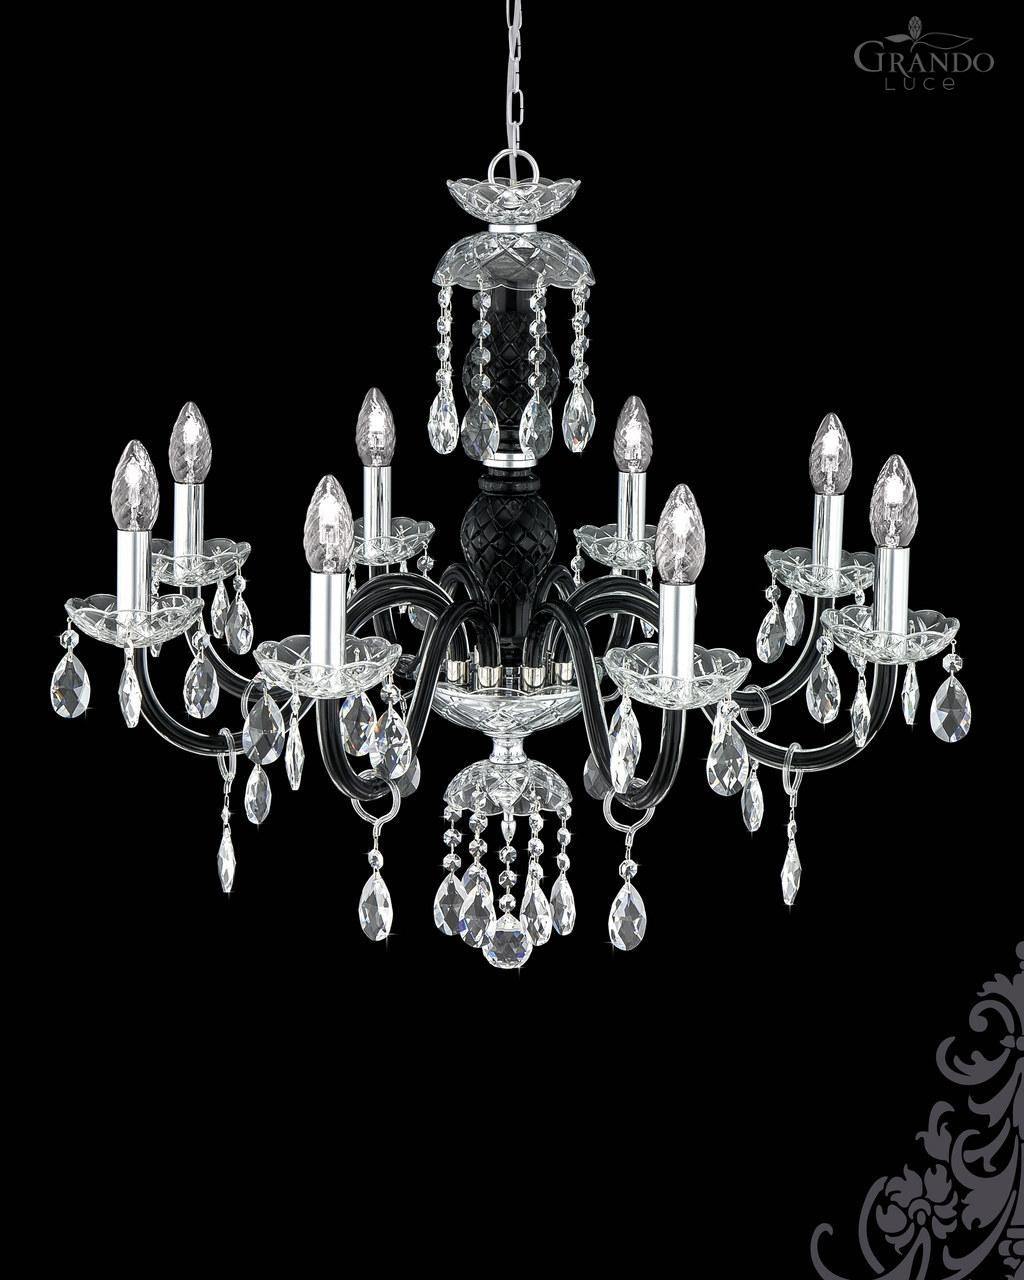 104ch 8 chrome black crystal chandelier with swarovski spectra 104ch 8 chrome black crystal chandelier olympia chandeliers mozeypictures